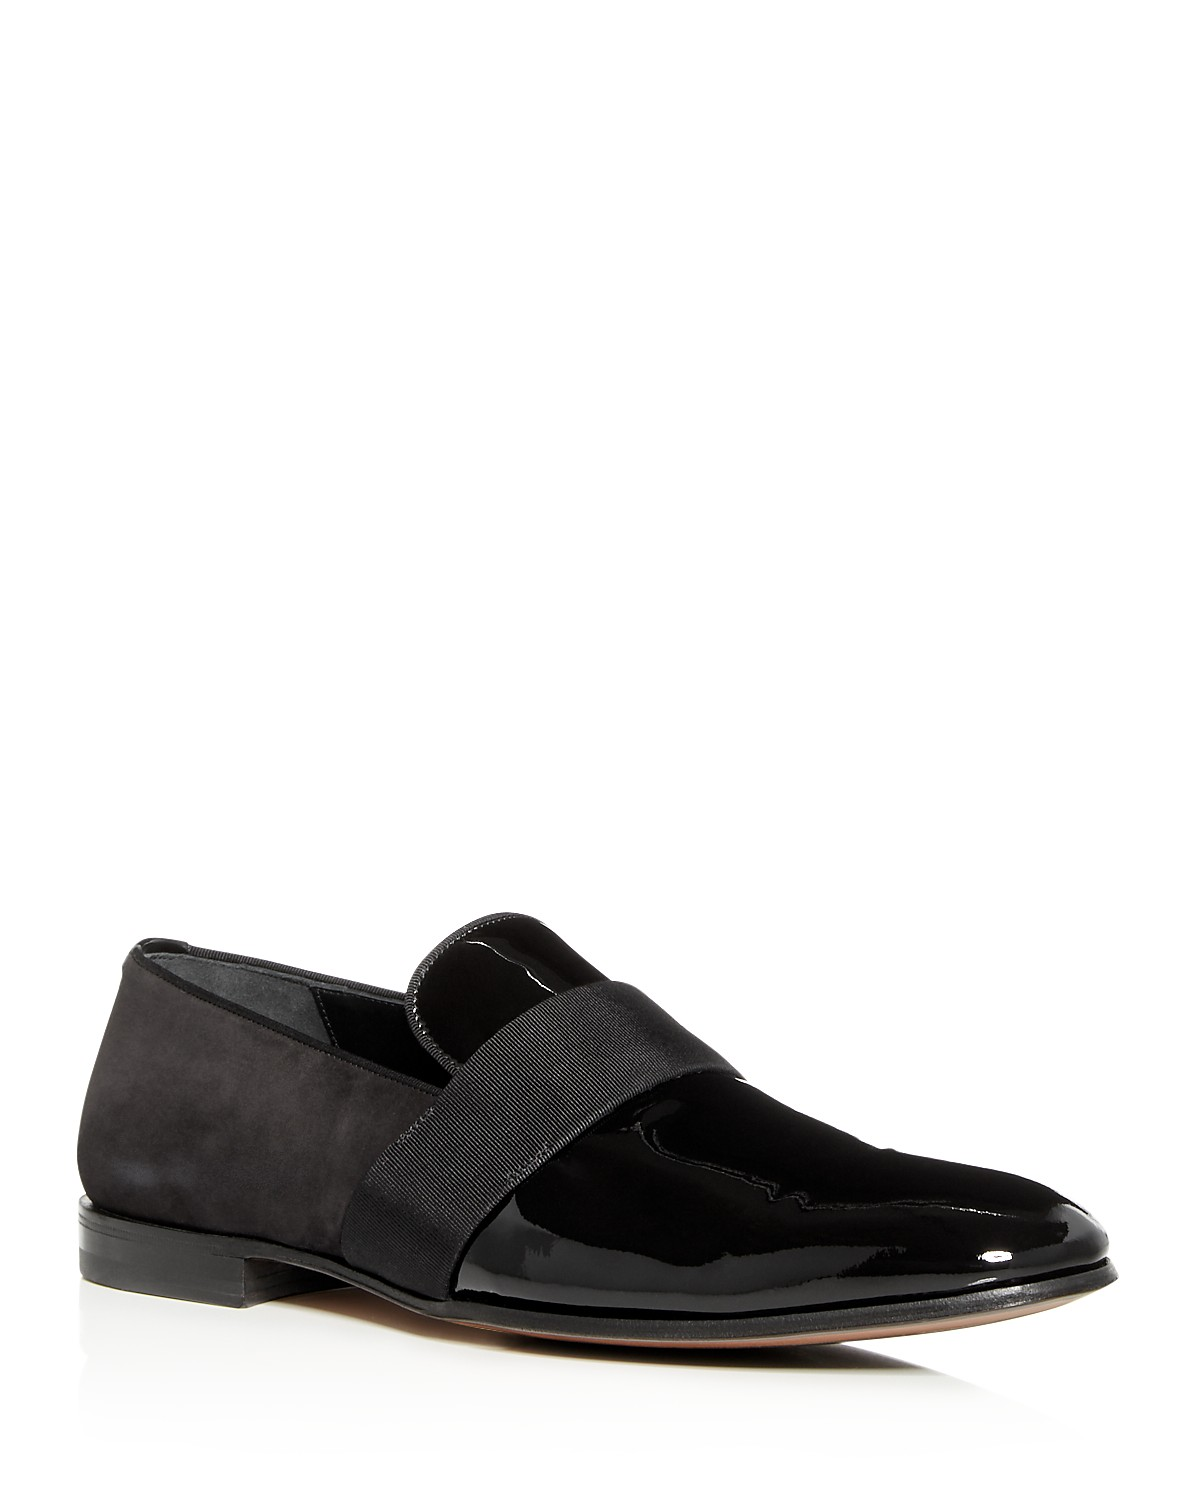 Salvatore FerragamoMen's Bryden Suede & Patent Leather Smoking Slippers q8dBaR